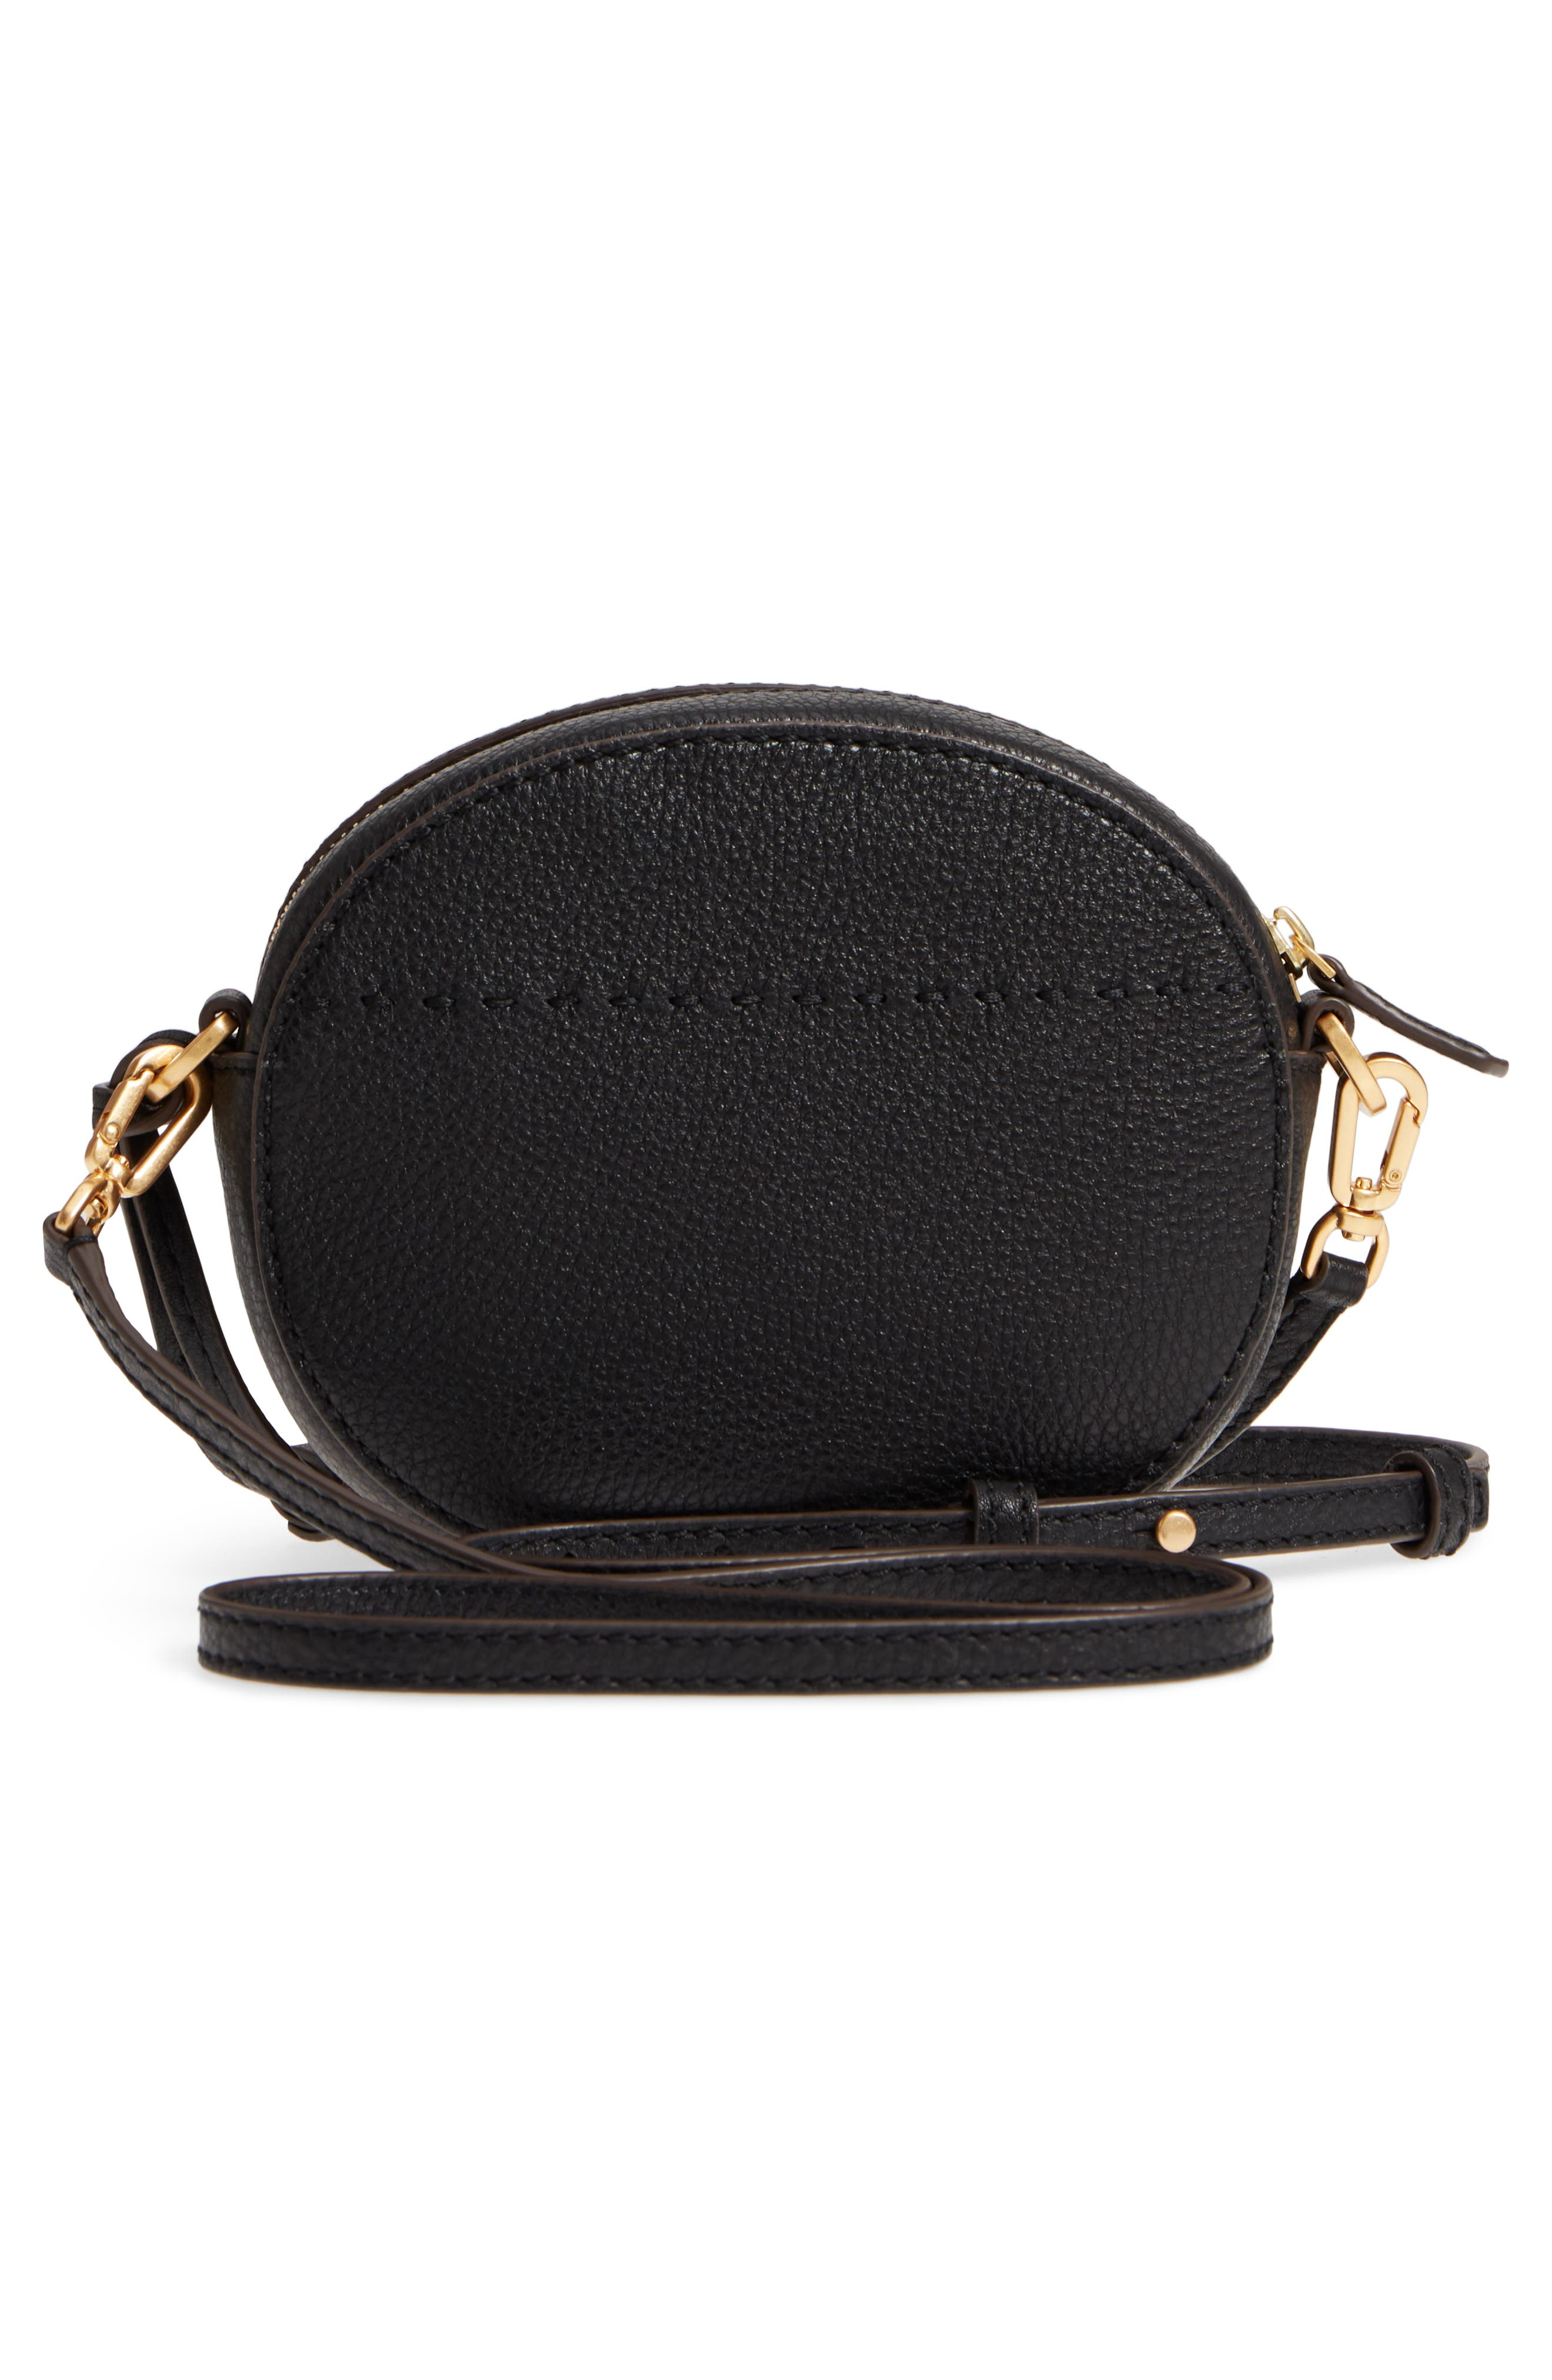 McGraw Leather Crossbody Bag,                             Alternate thumbnail 3, color,                             Black